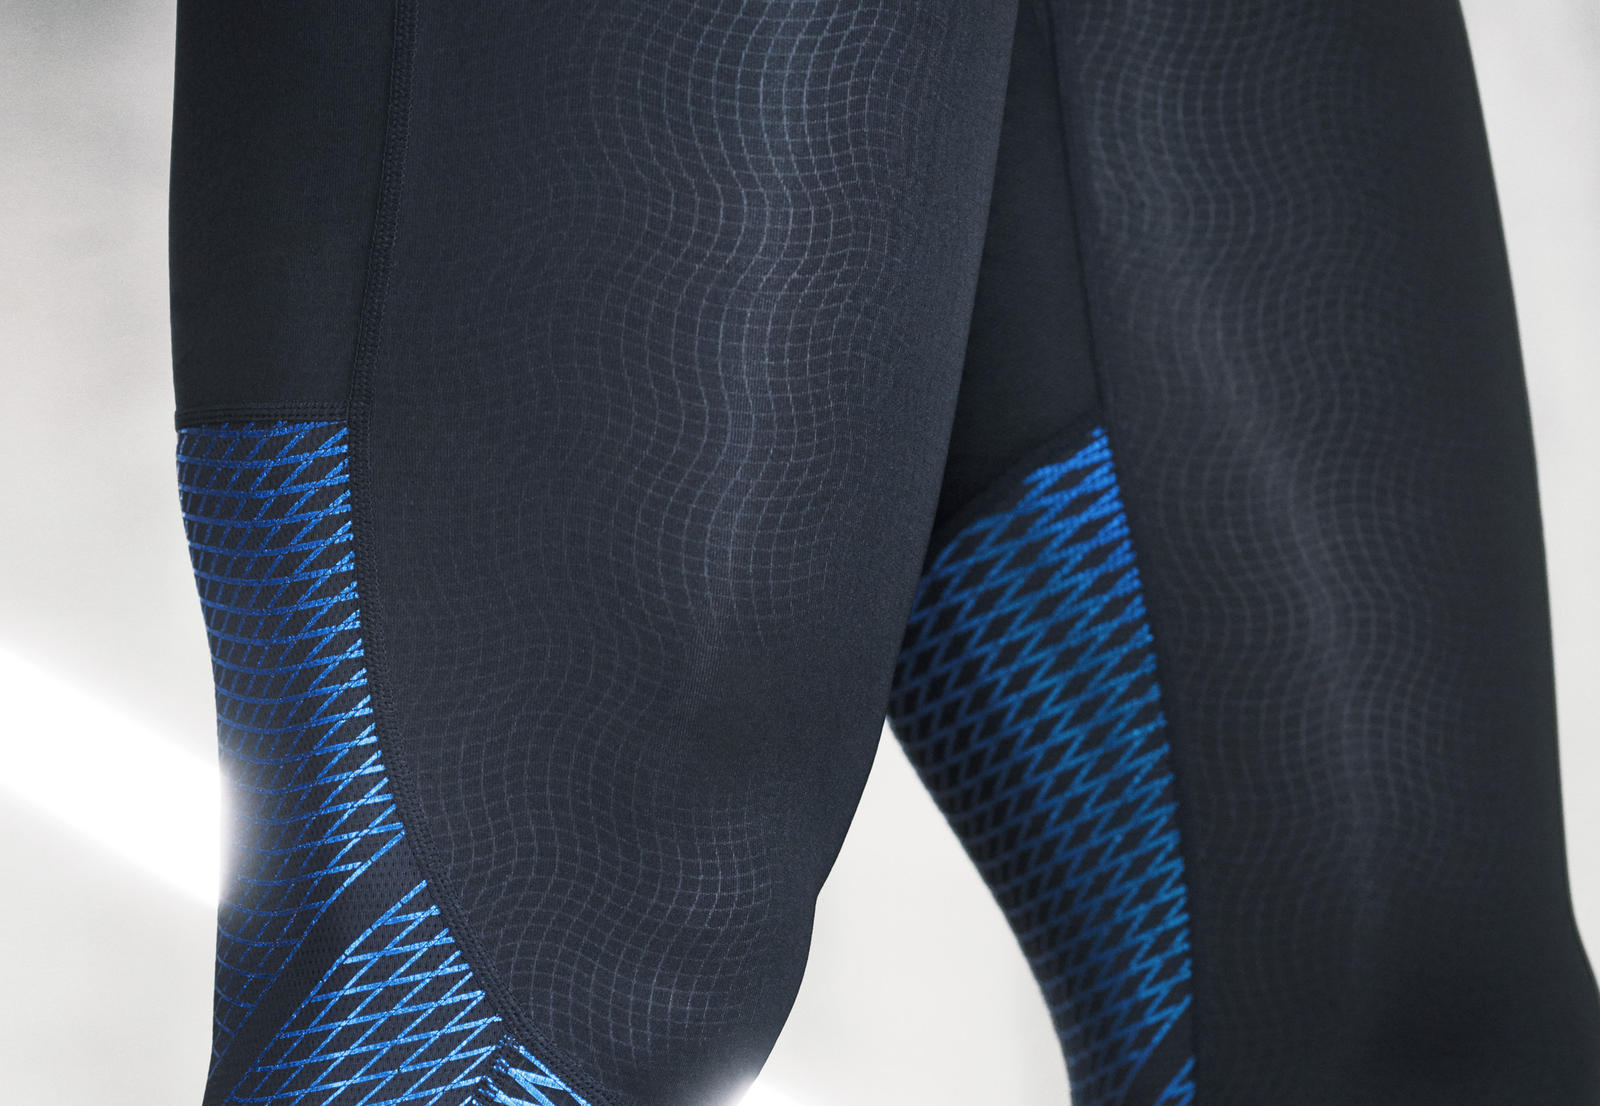 Nike Pro Hypercool Max Tight Nike News